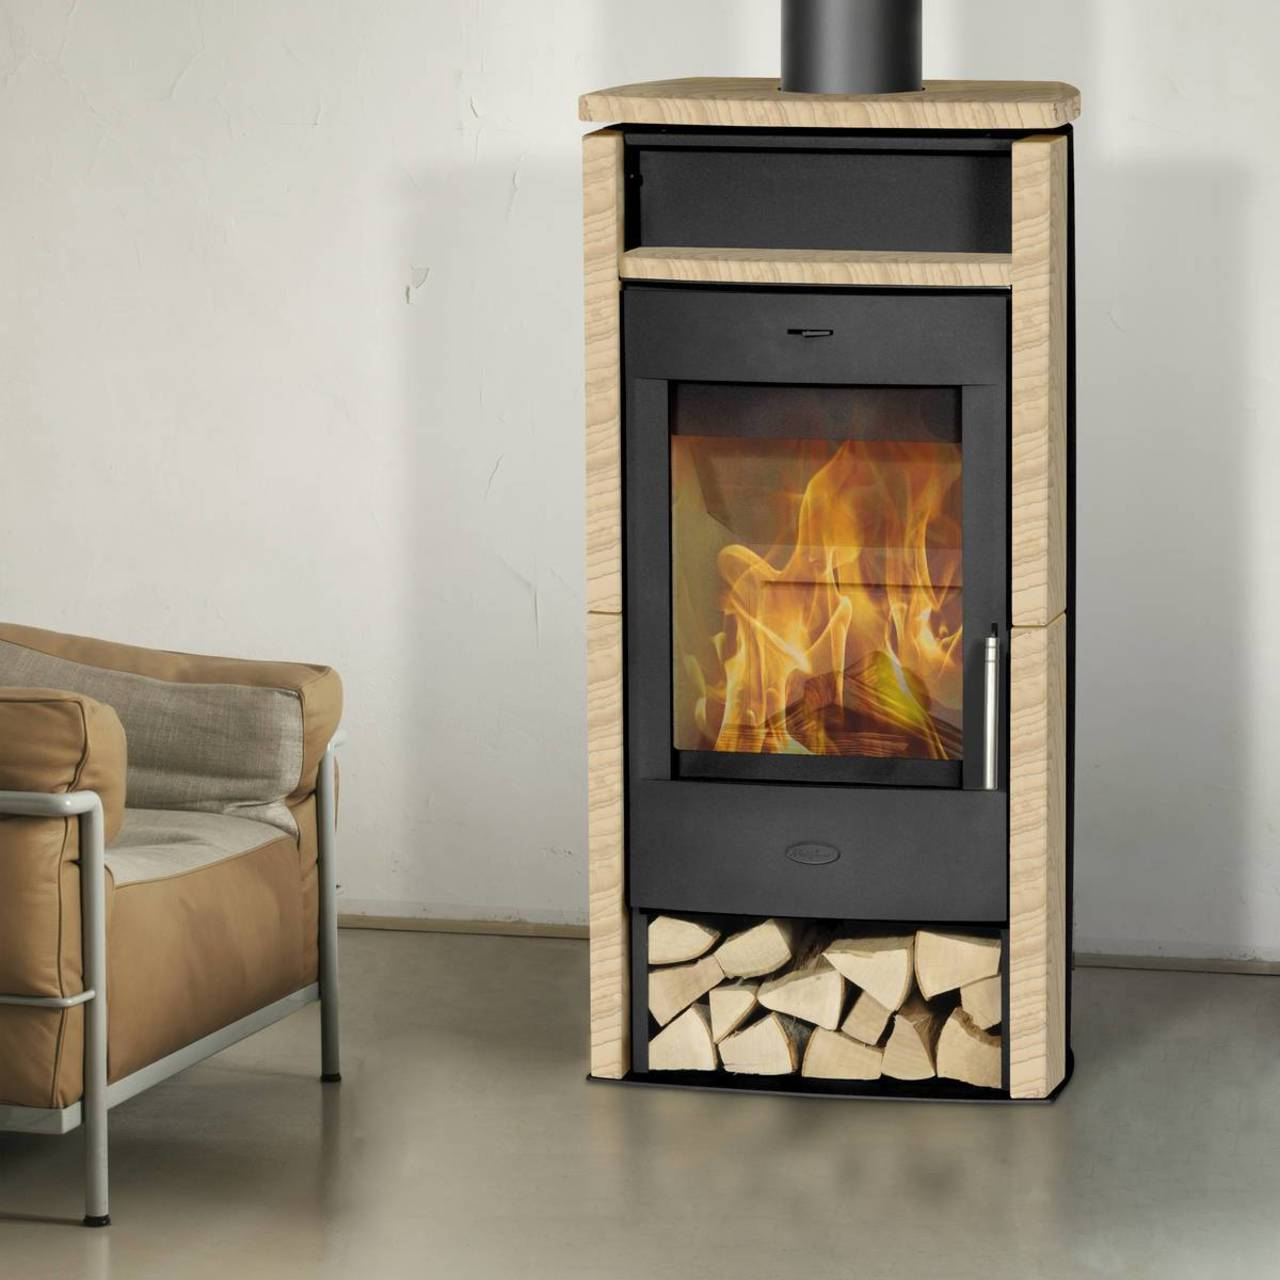 fireplace kaminofen santiago mit sandstein 6 kw panorama scheibe kamin ofen ebay. Black Bedroom Furniture Sets. Home Design Ideas